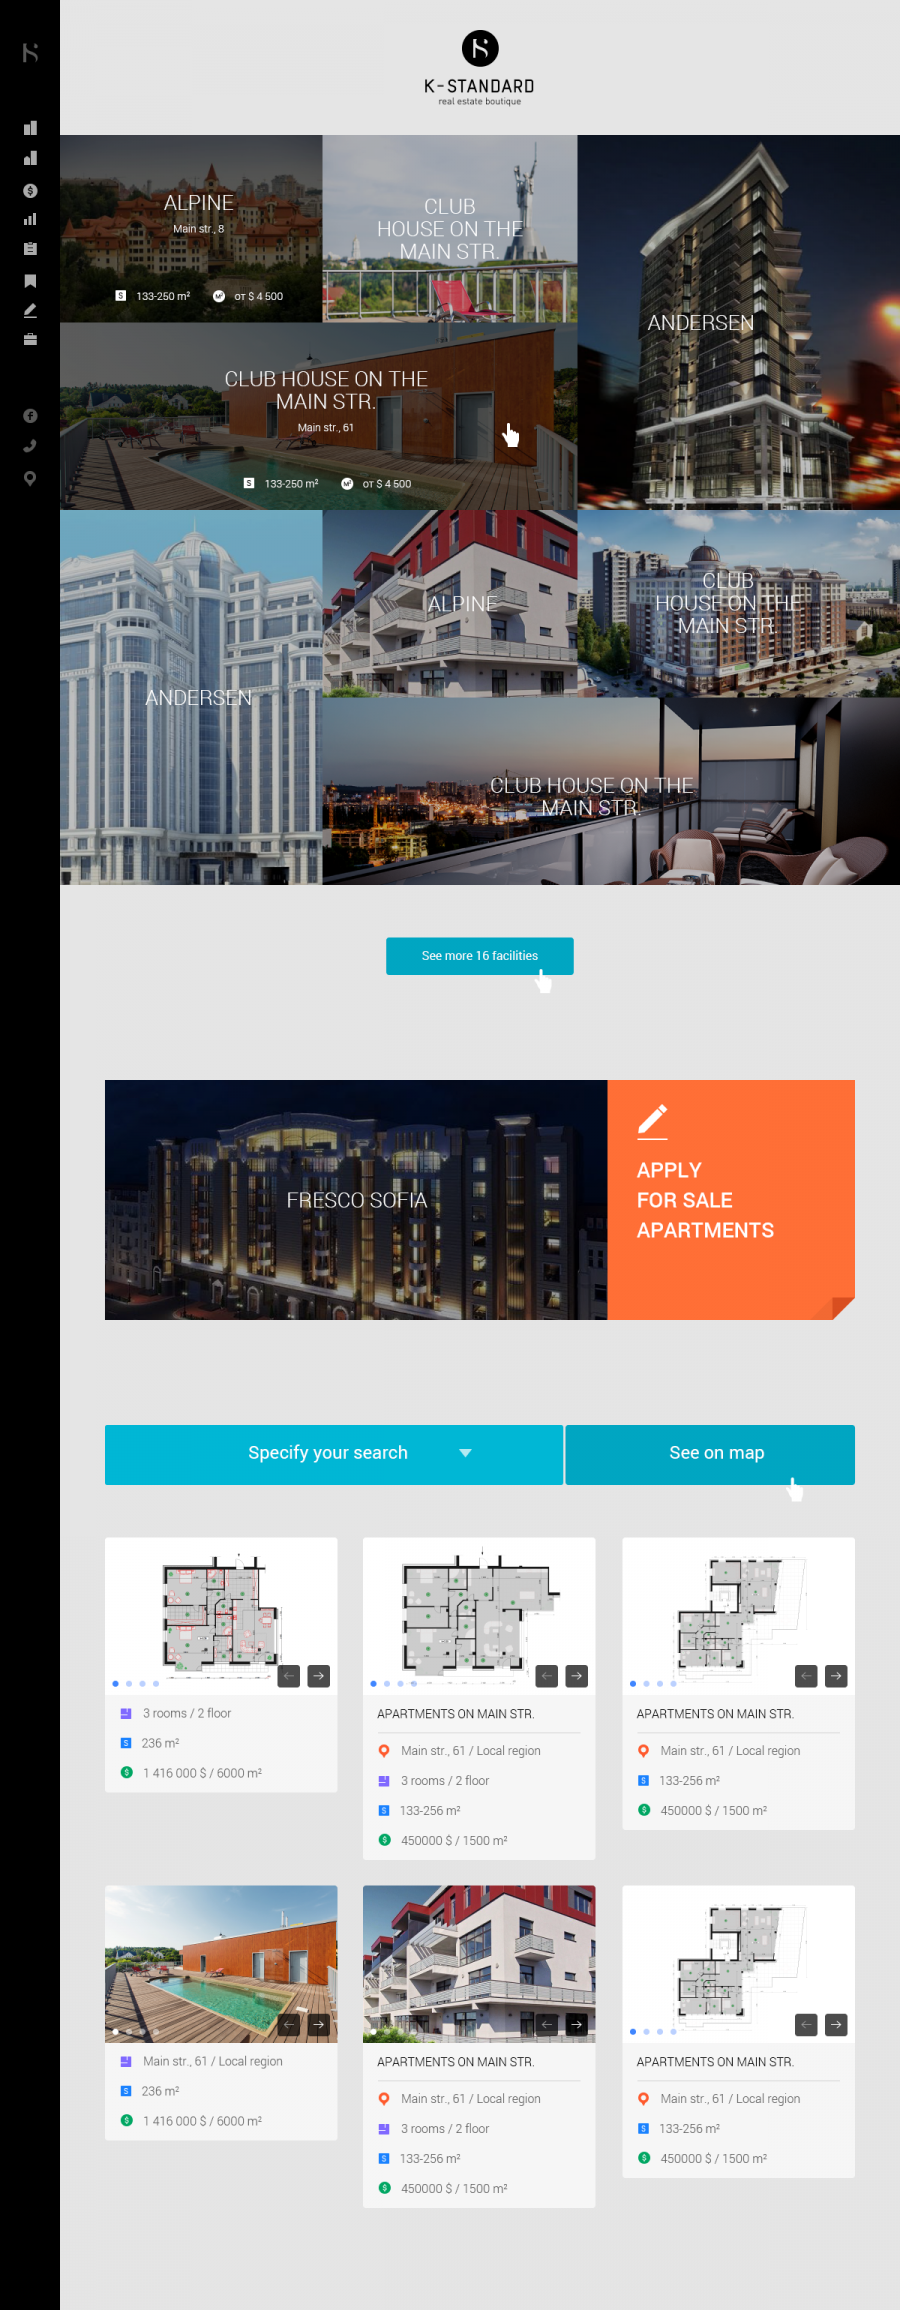 Web design realty